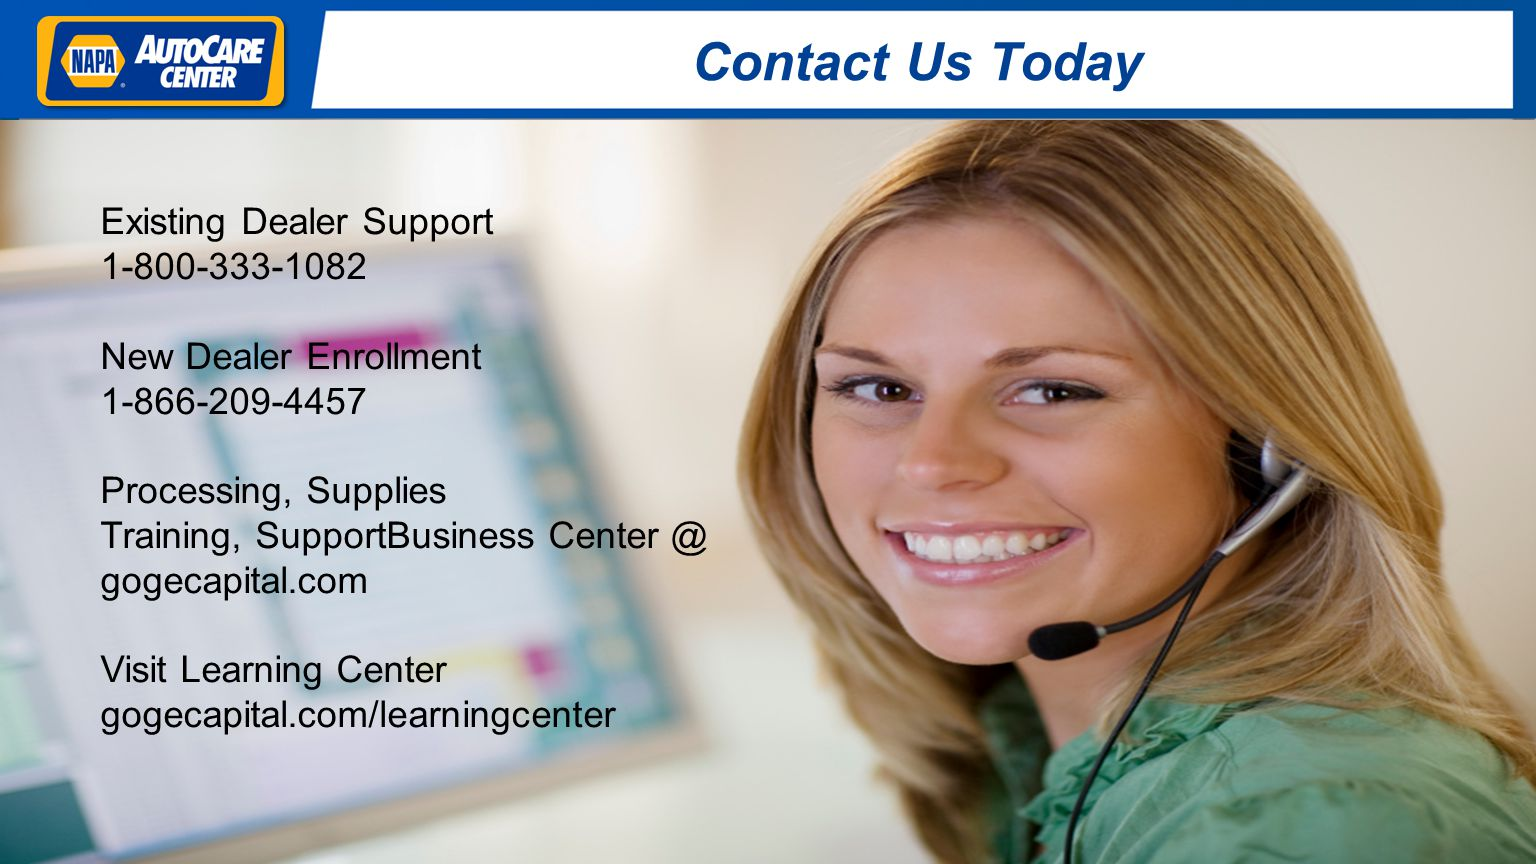 Contact Us Today Existing Dealer Support 1-800-333-1082